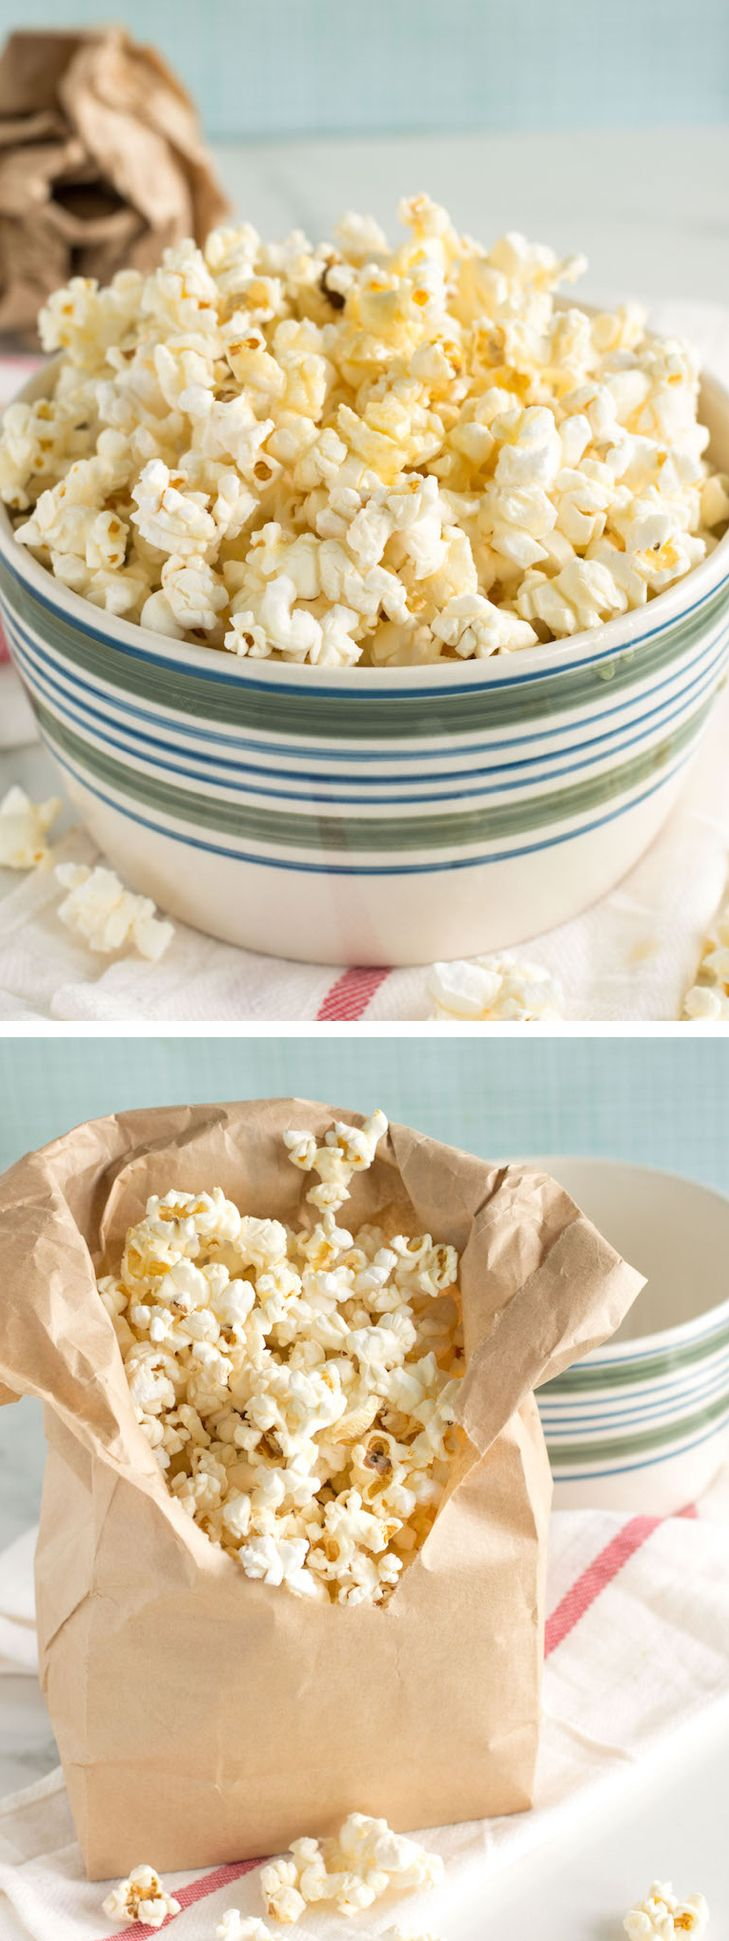 Homemade Sweet and Salty Popcorn | nourishedtheblog.com | Freshly popped popcorn drizzled with butter and honey and vanilla and sea salt is the ultimate in sweet and salty. This popcorn snack is super (Gluten Free Recipes For Party)